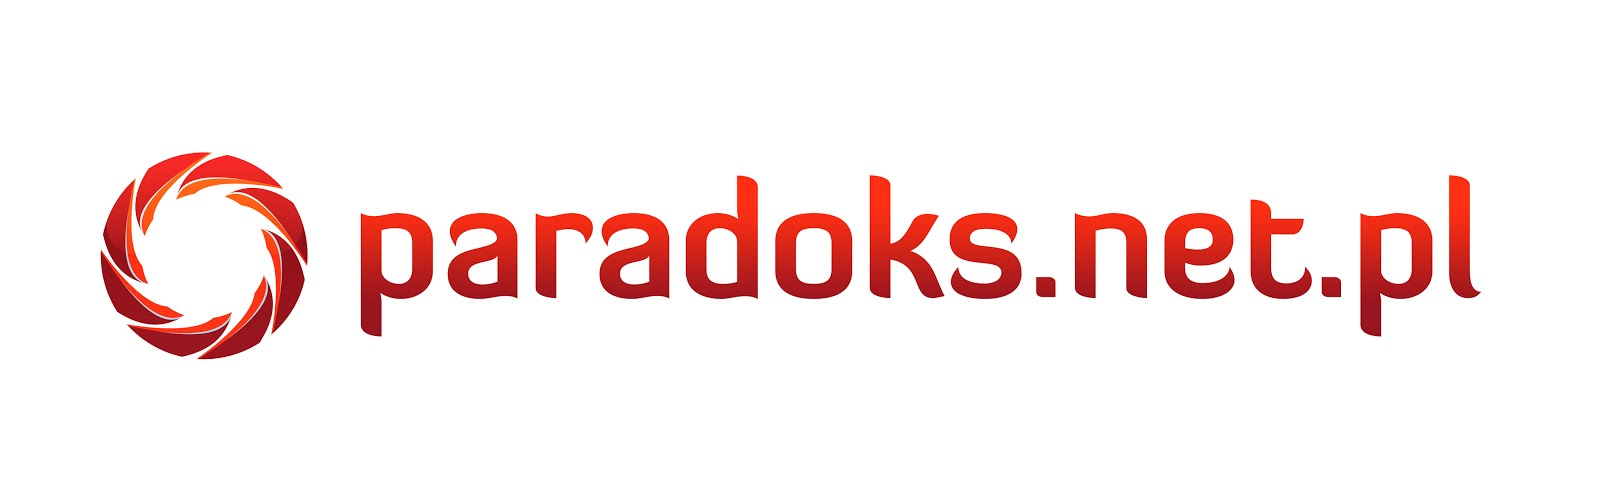 Paradoks